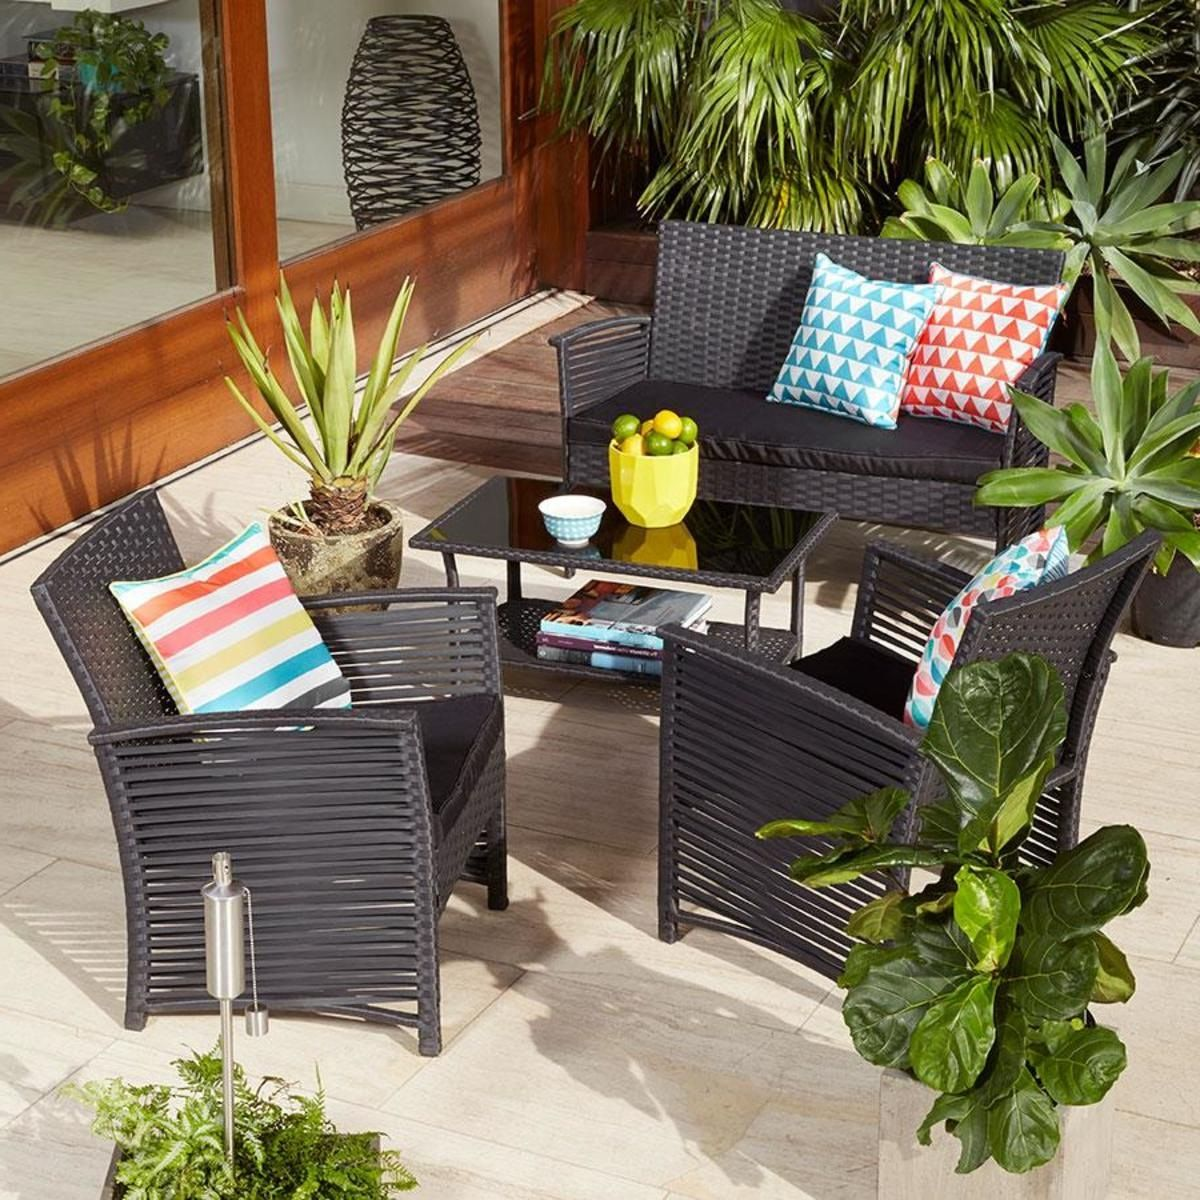 Kmart Outdoor Furniture Clearance Astonishing Kmart Patio Furniture Exterior Kmart Patio